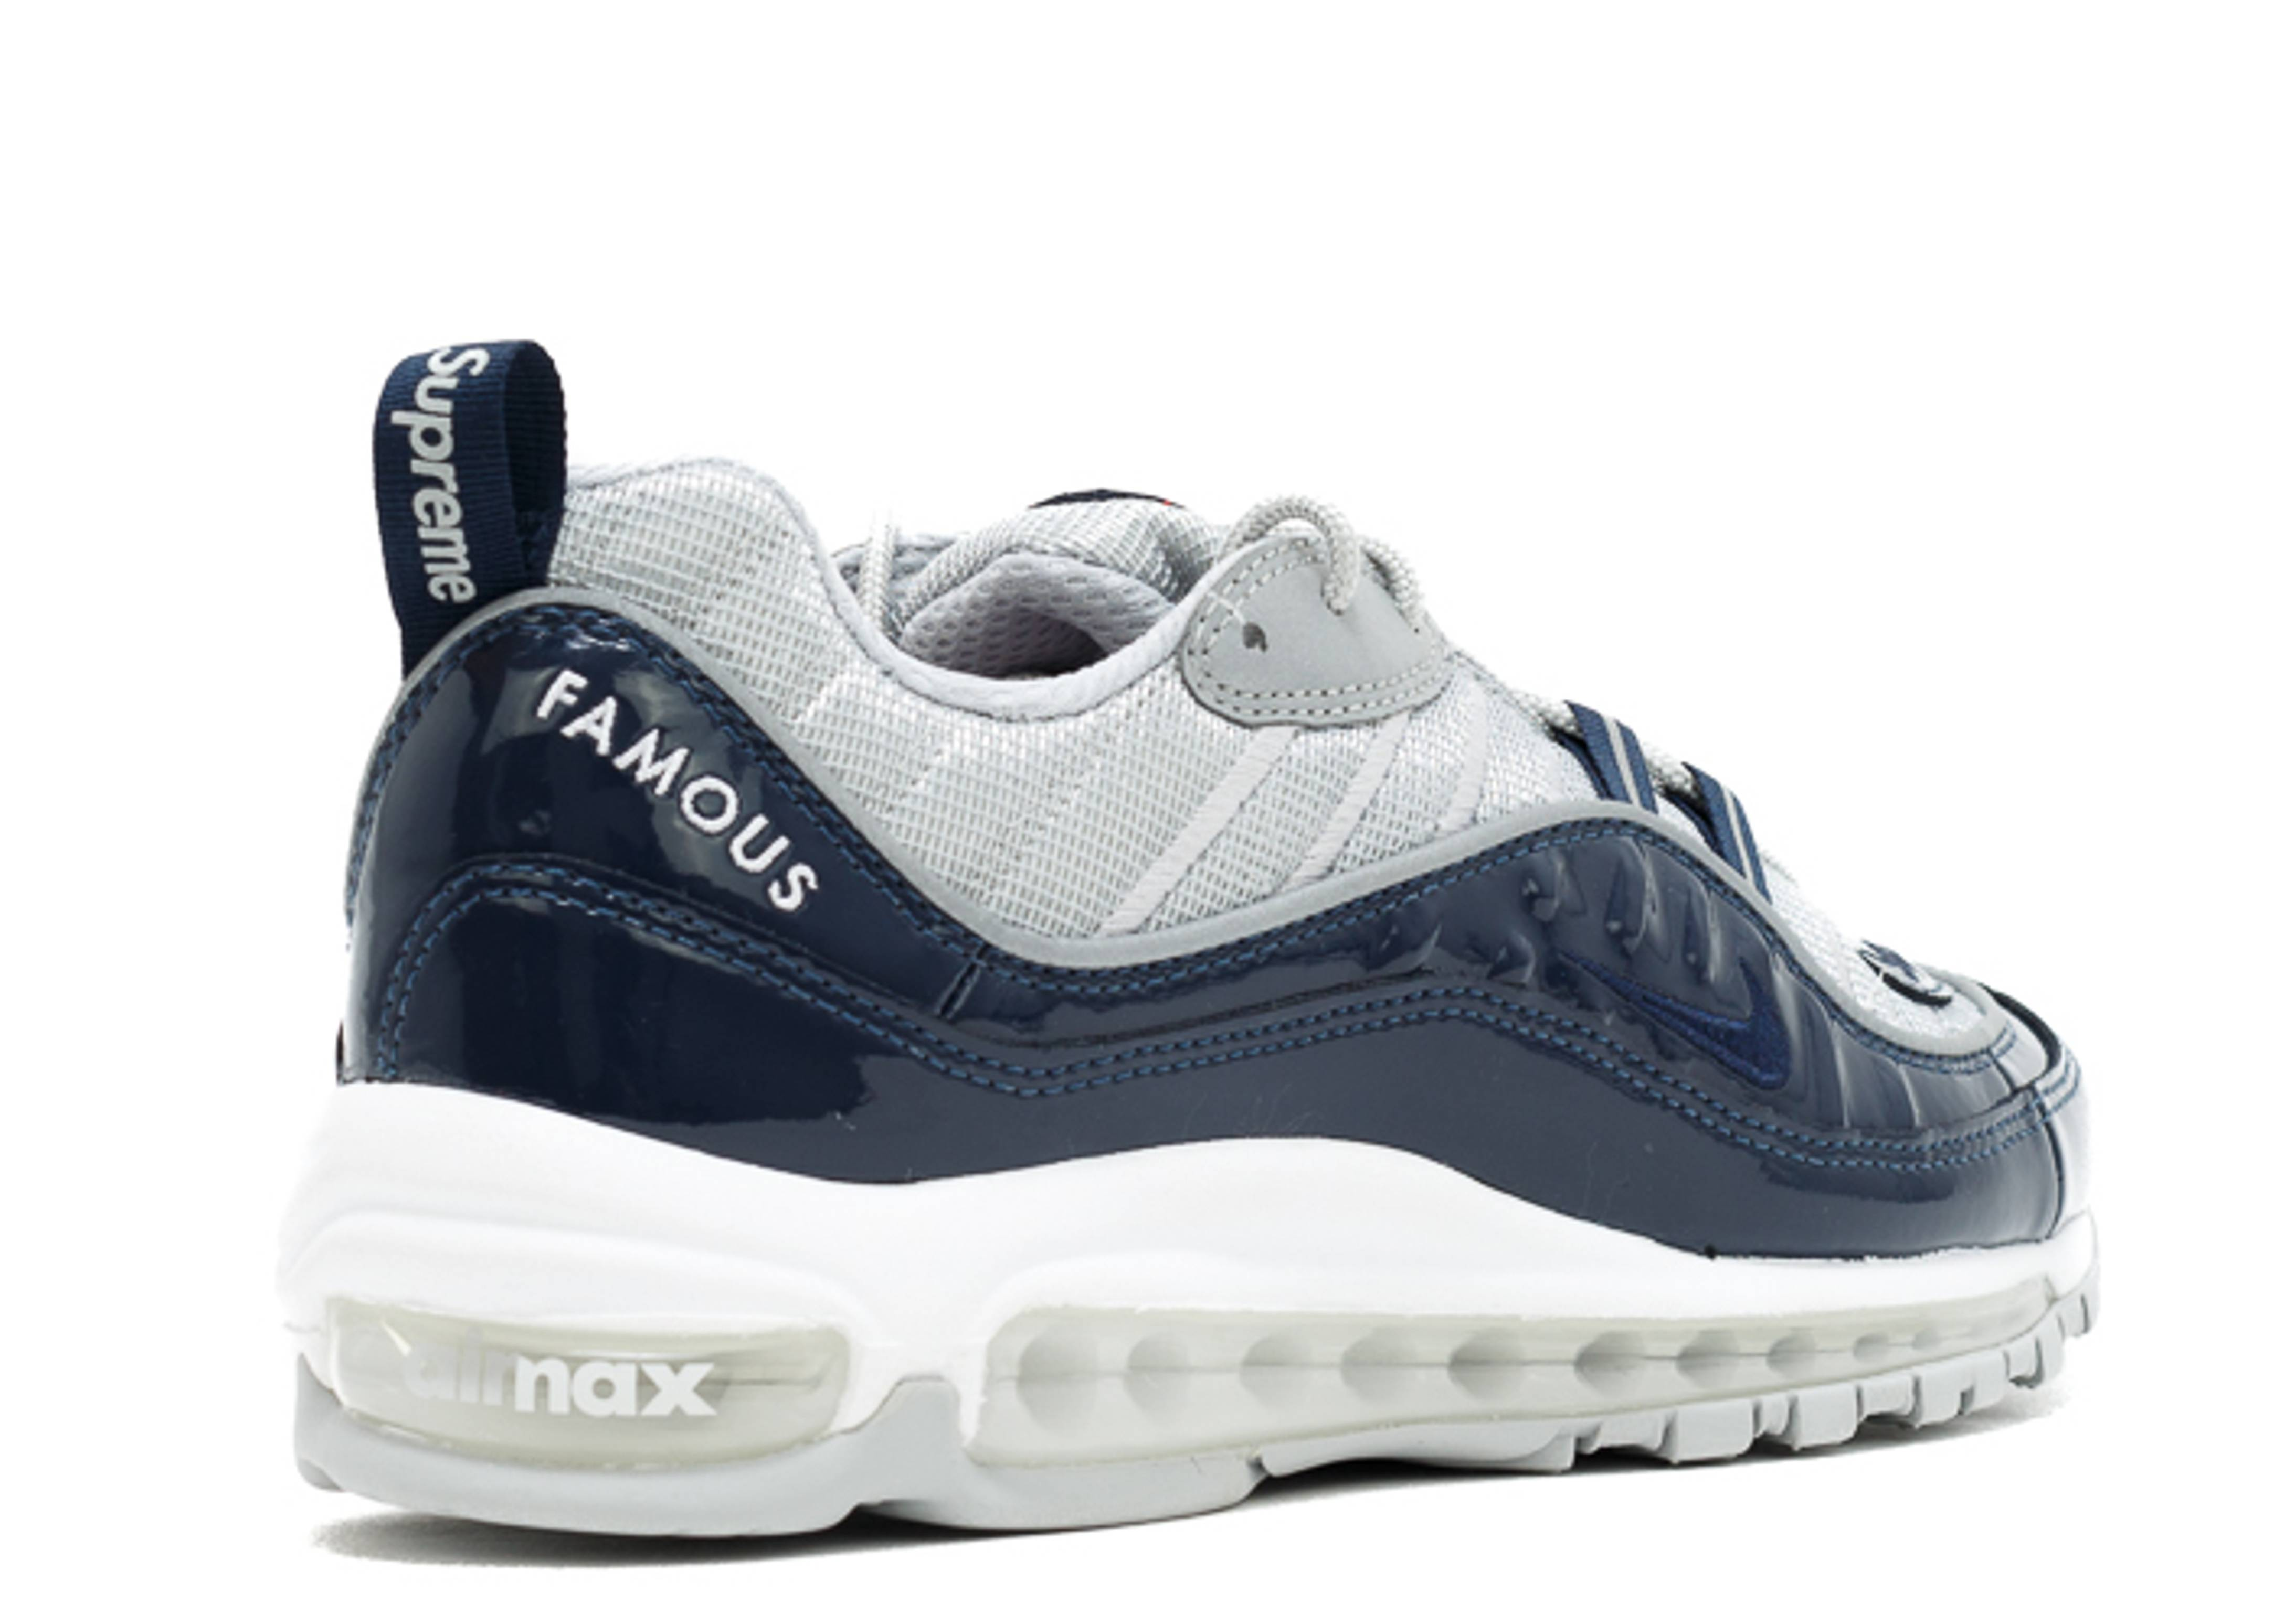 air max 98 supreme supreme obsdn obsdn rflct slvr white nike flight club. Black Bedroom Furniture Sets. Home Design Ideas